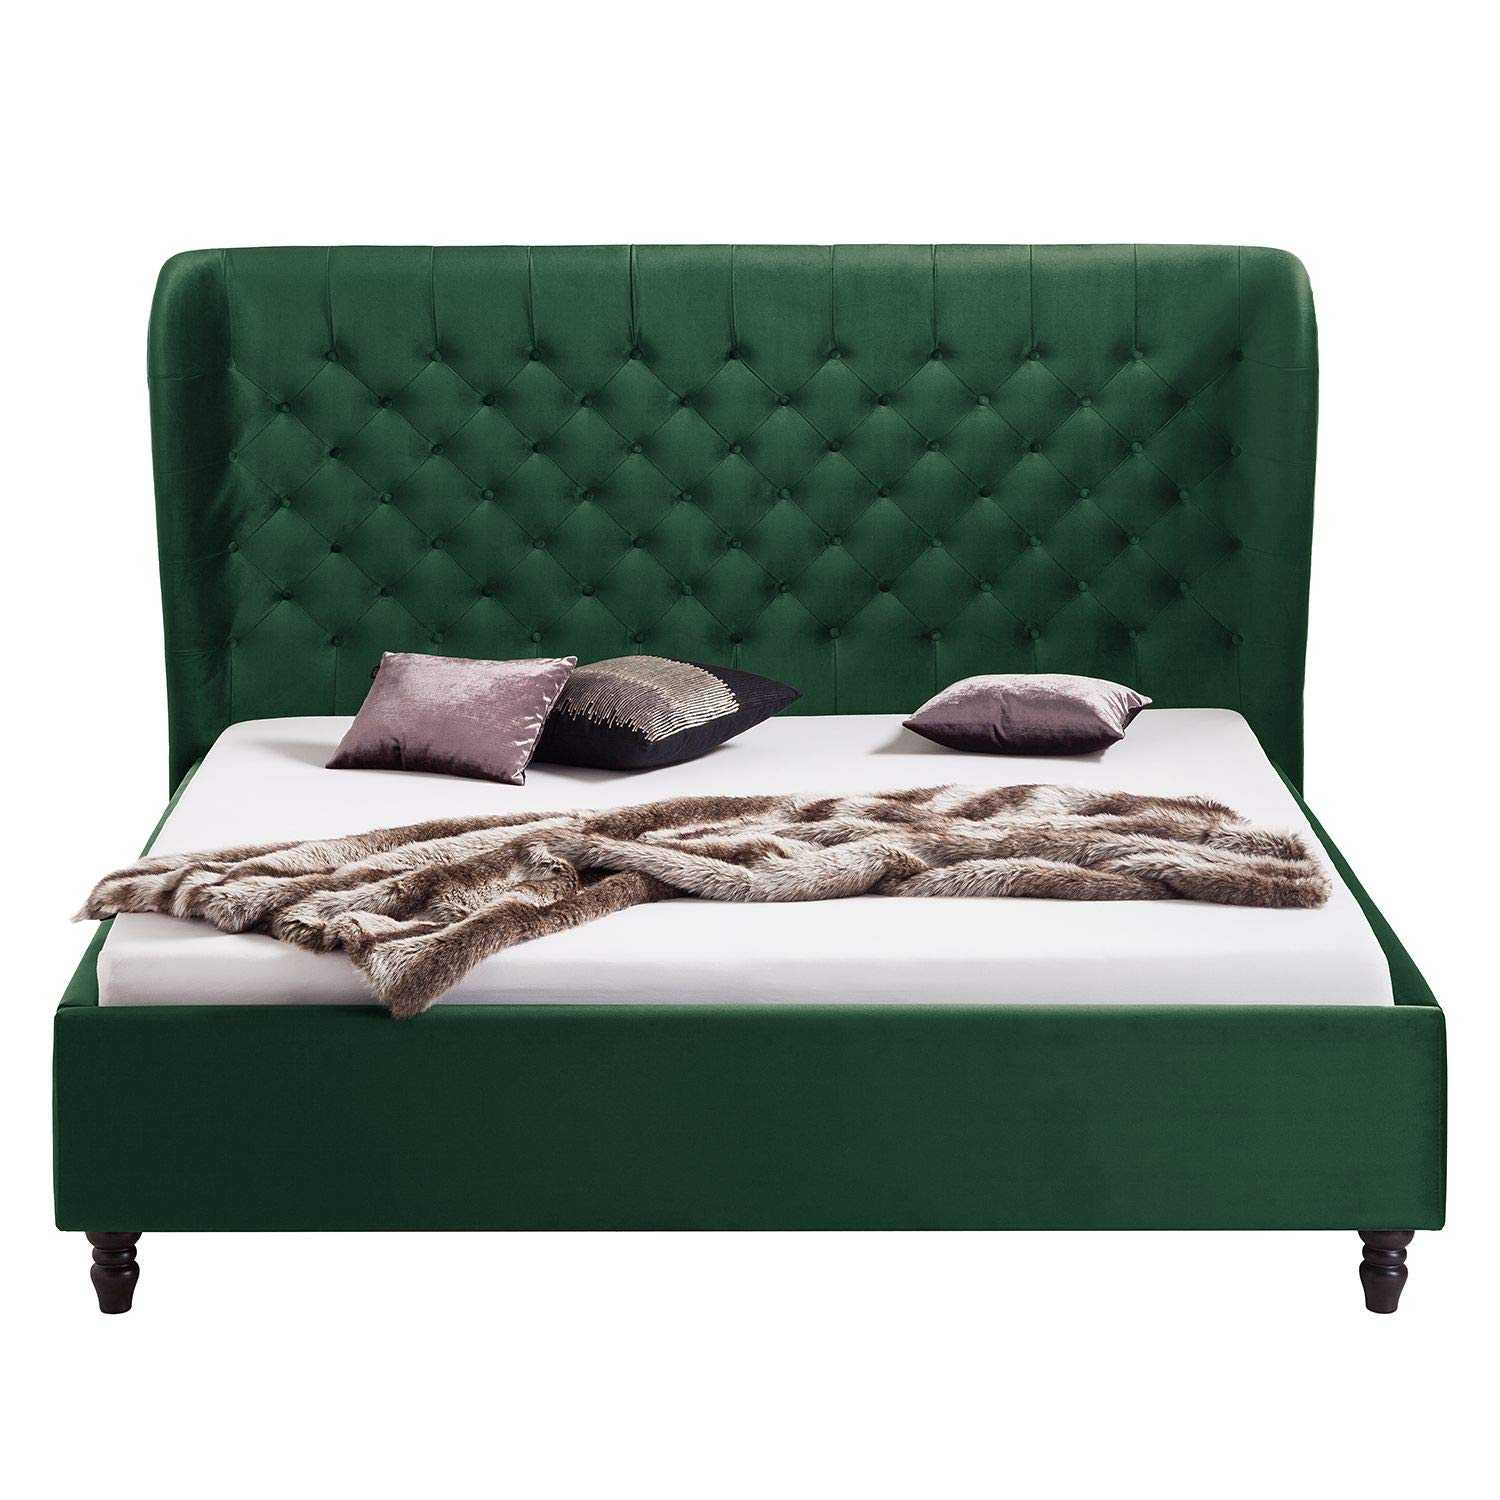 Alvin upholstered bed king Low Height King Size Bed Without Storage (Finish: Green Leatherite)